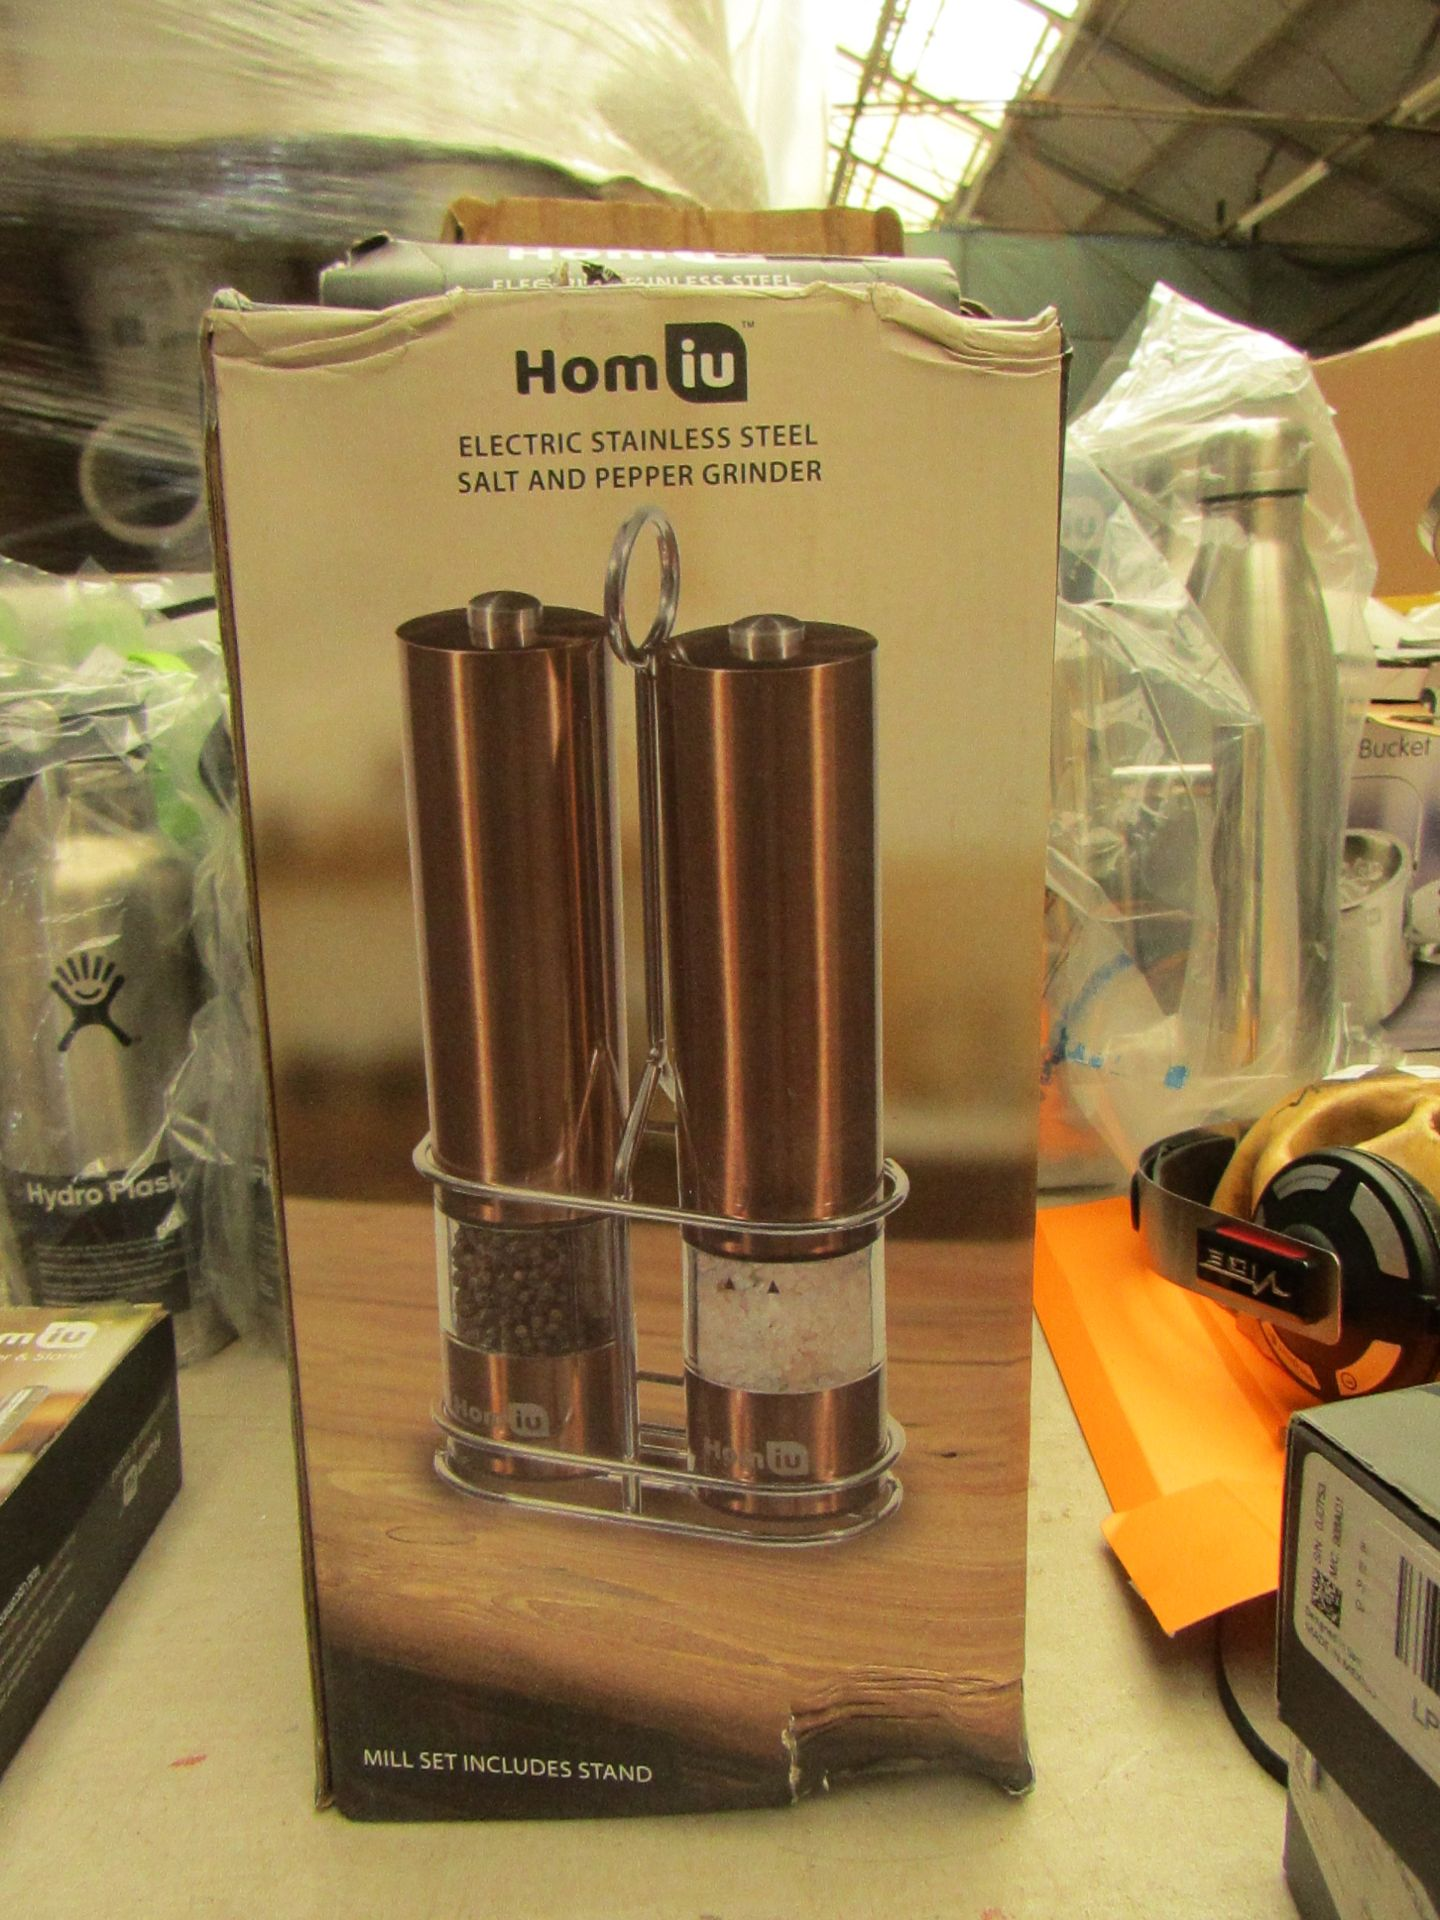 Lotto 19 - Homiu Electric Stainless Steel Salt and Pepper Grinder set in Copper . Boxed